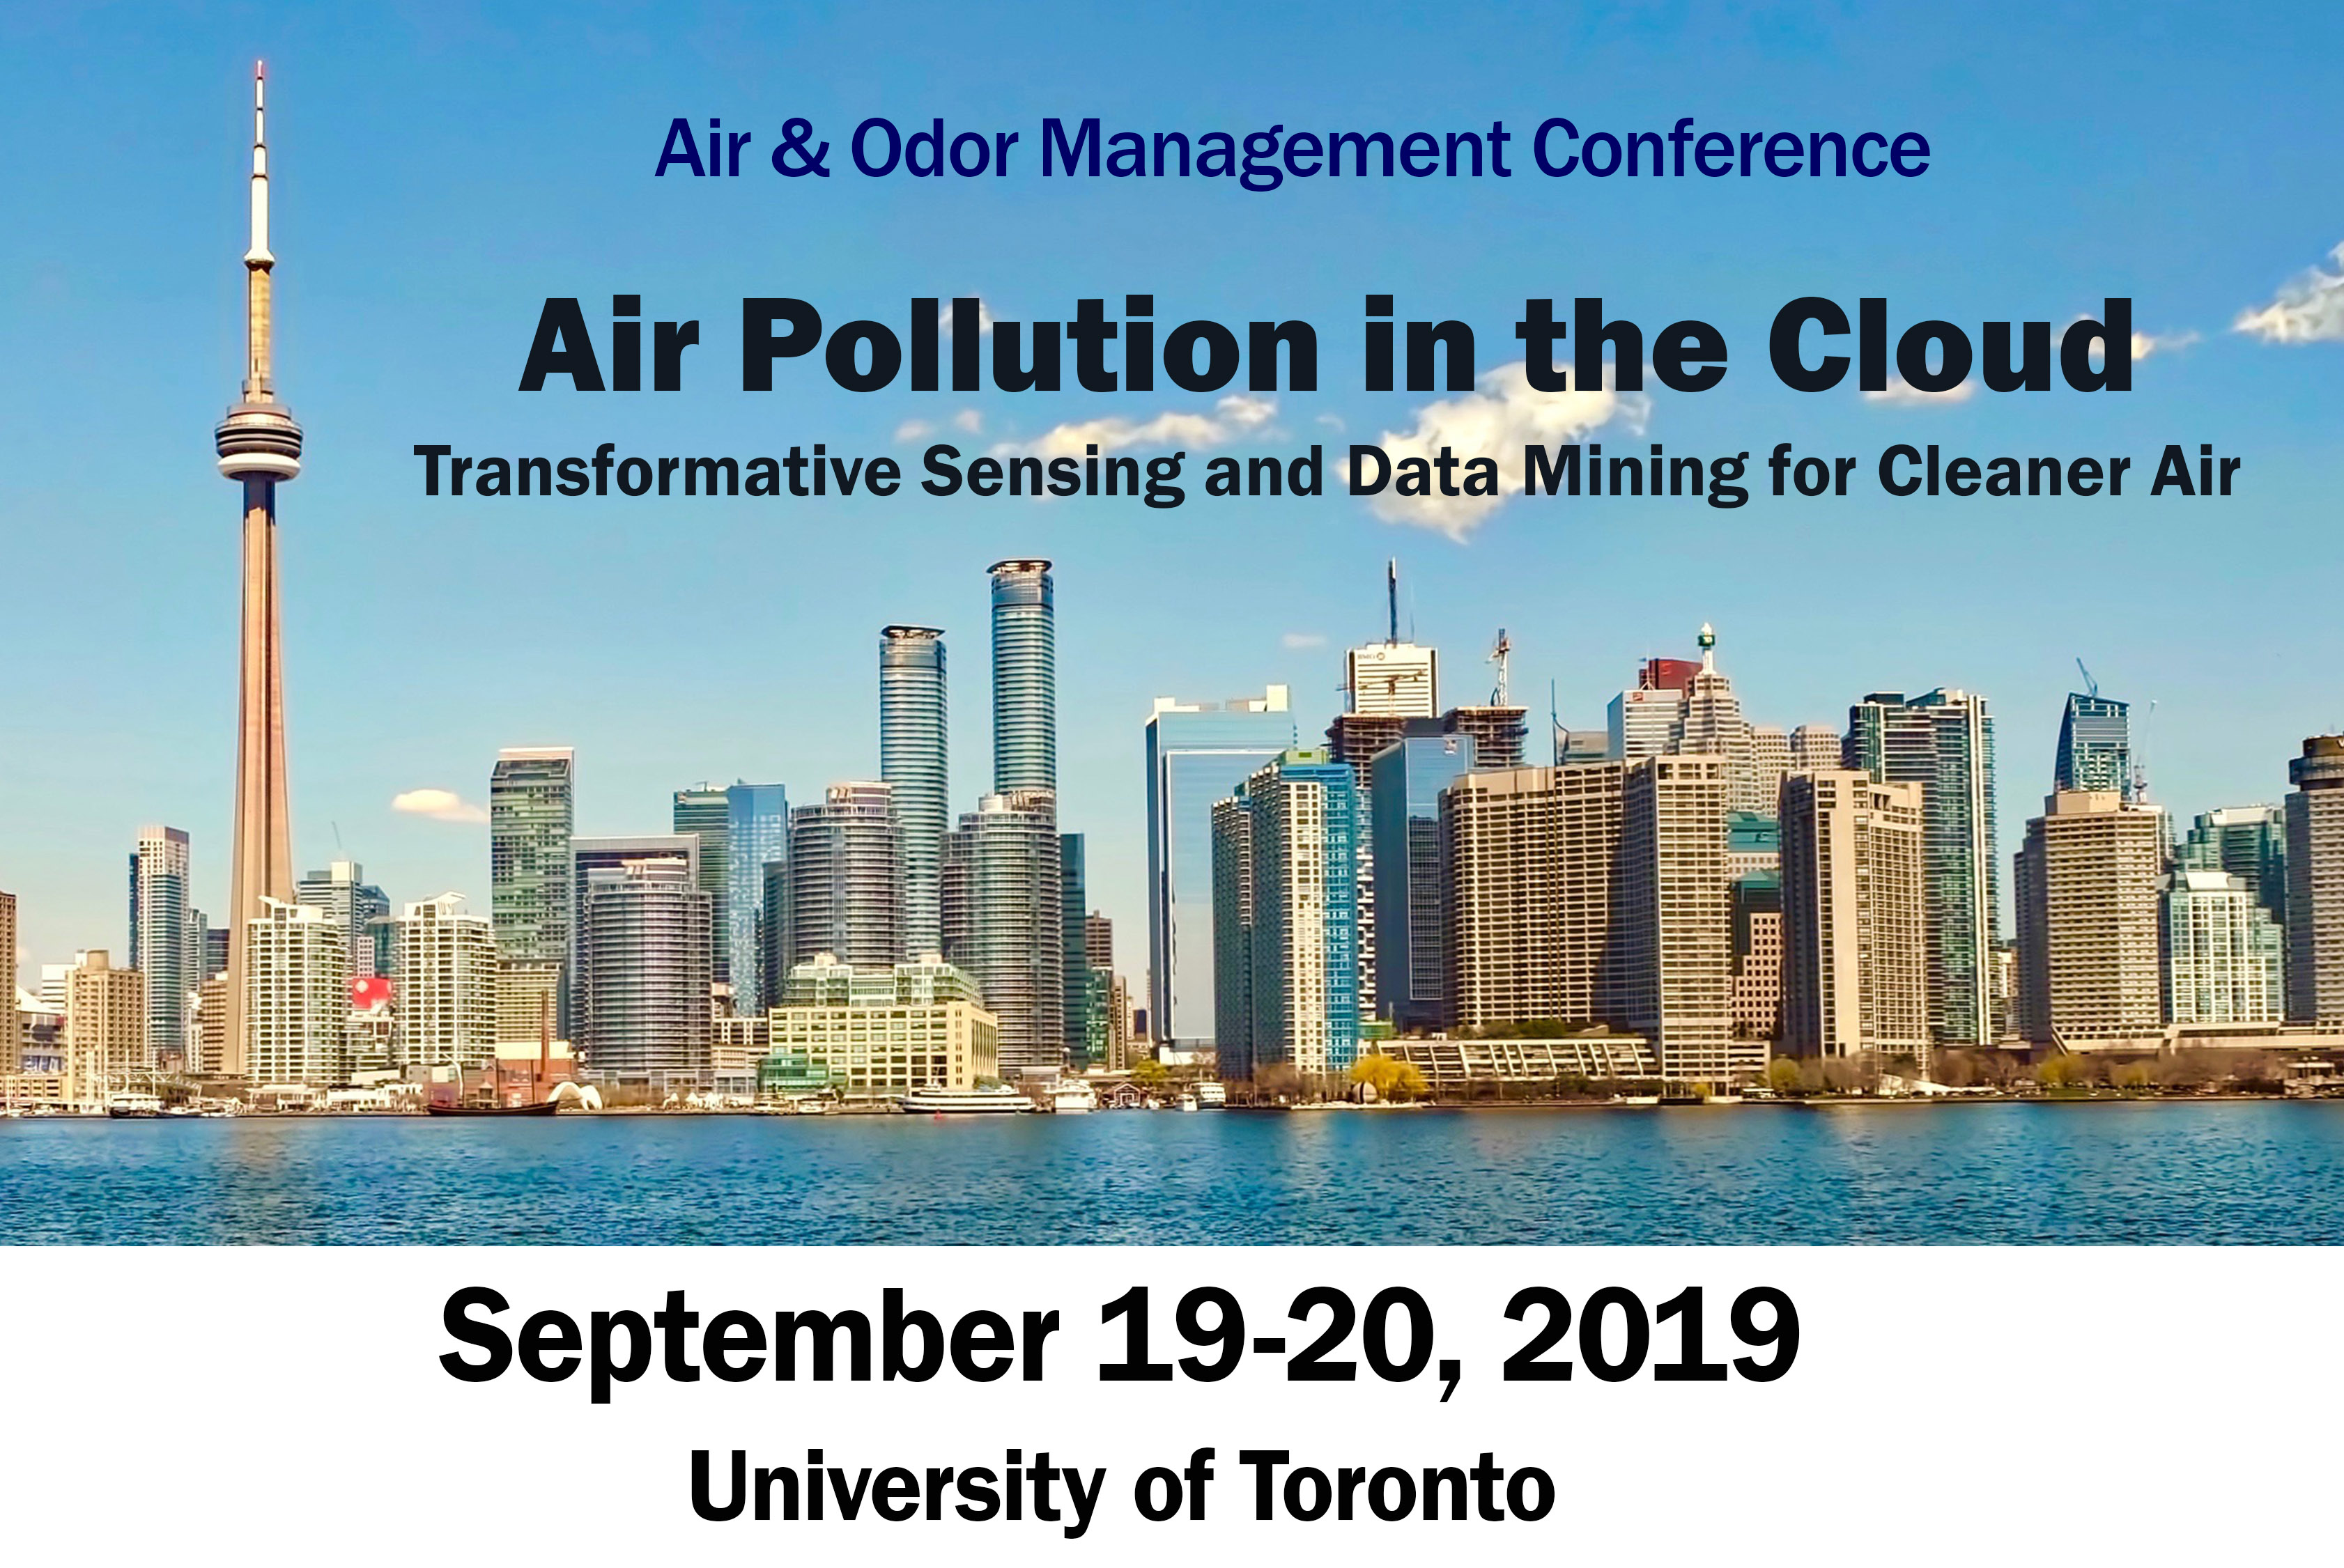 Conference information against photo of Toronto skyline